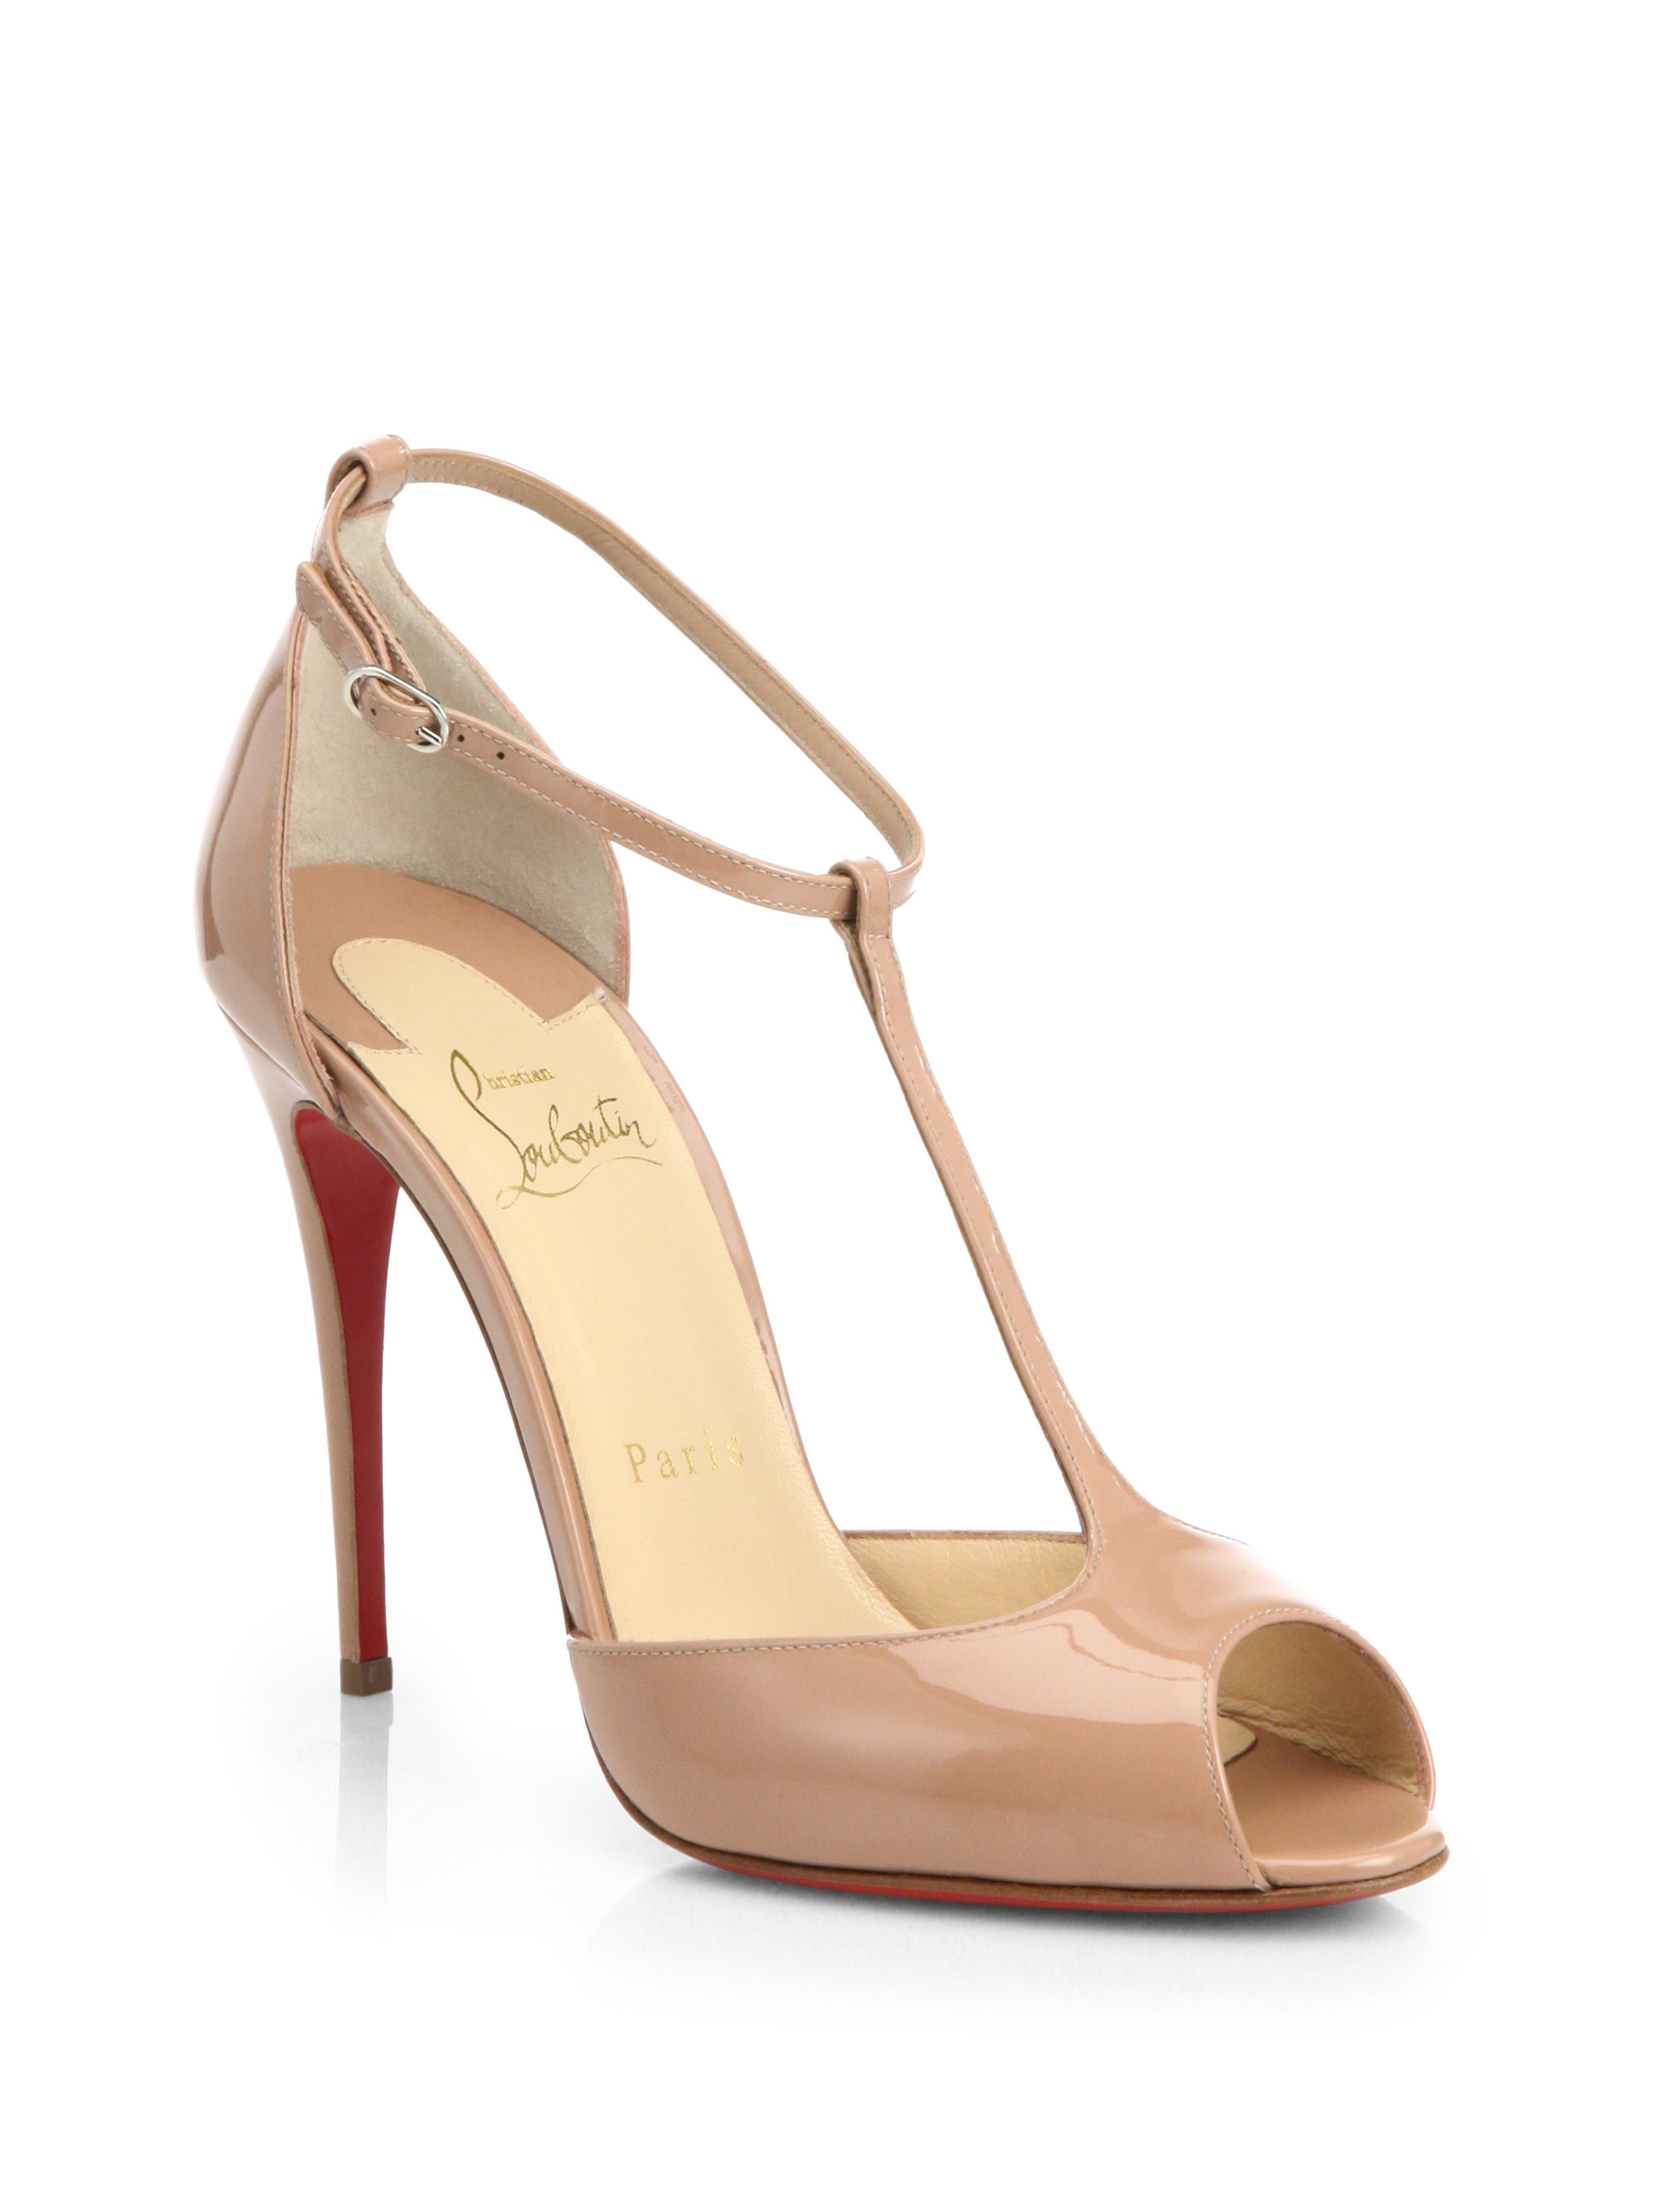 cheapest price cheap online outlet store cheap price Christian Louboutin Patent T-Strap Pumps cheap sale very cheap outlet cheapest price IuKlM